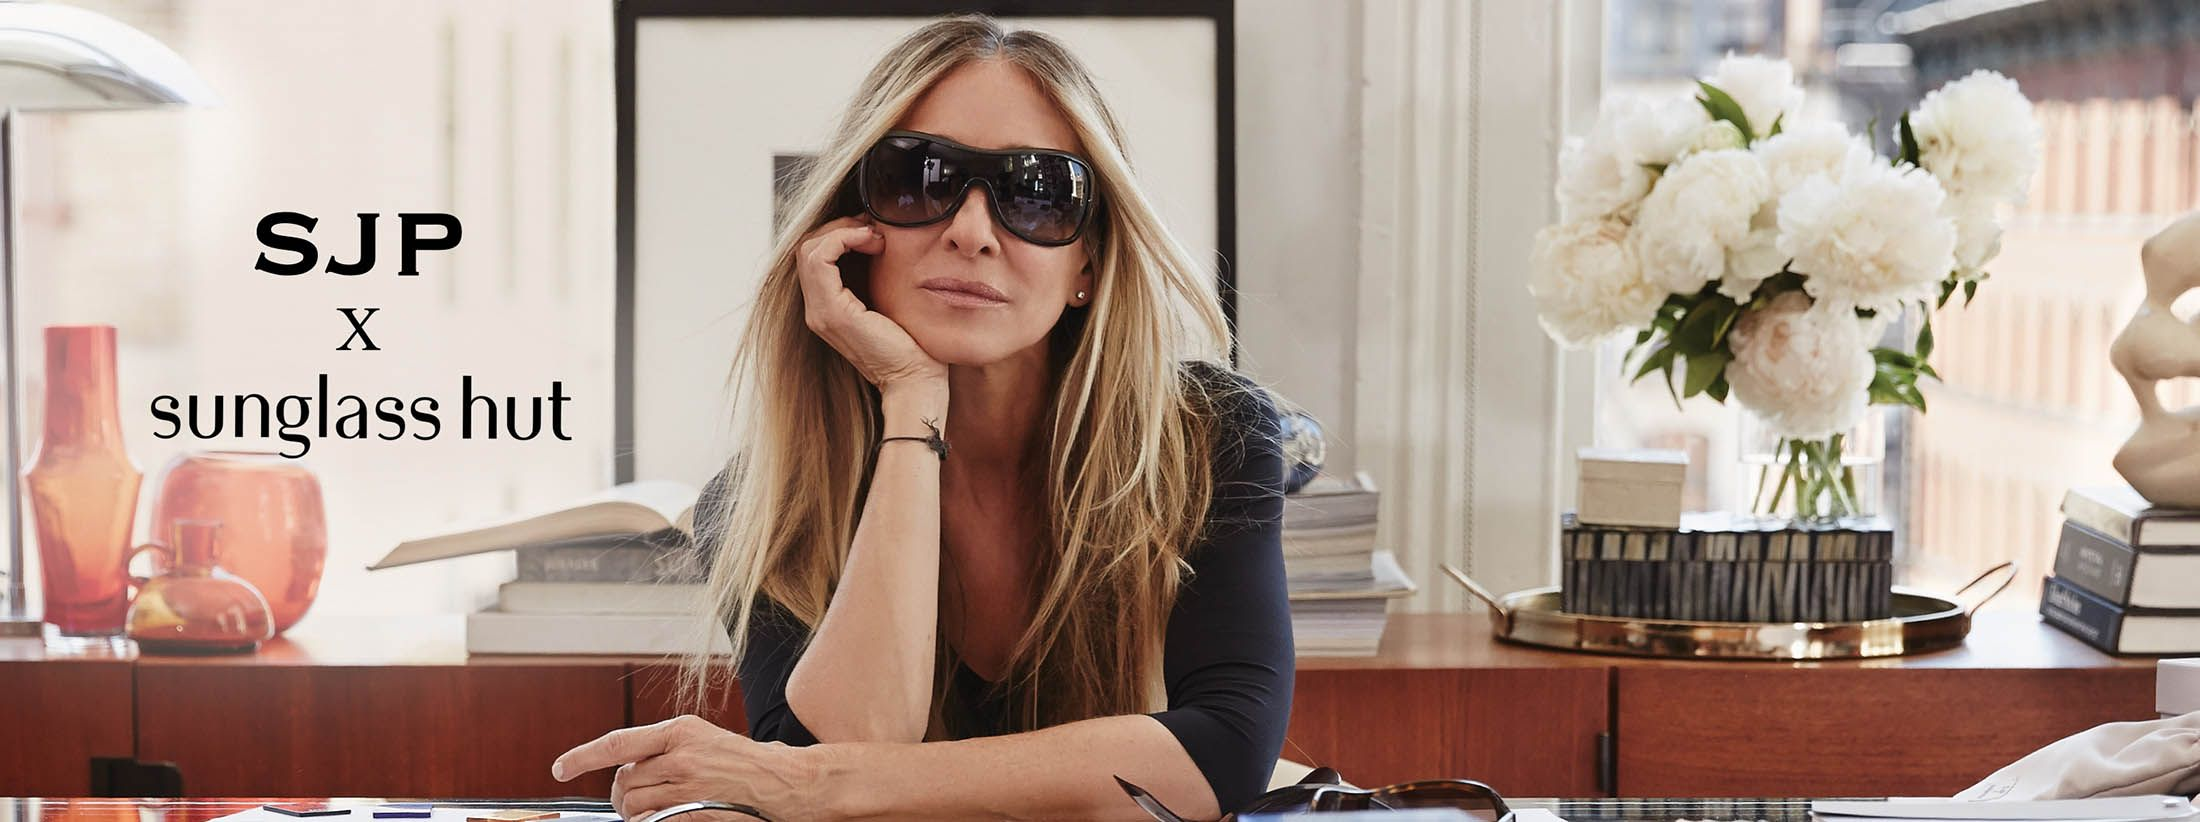 SJP sunglasses